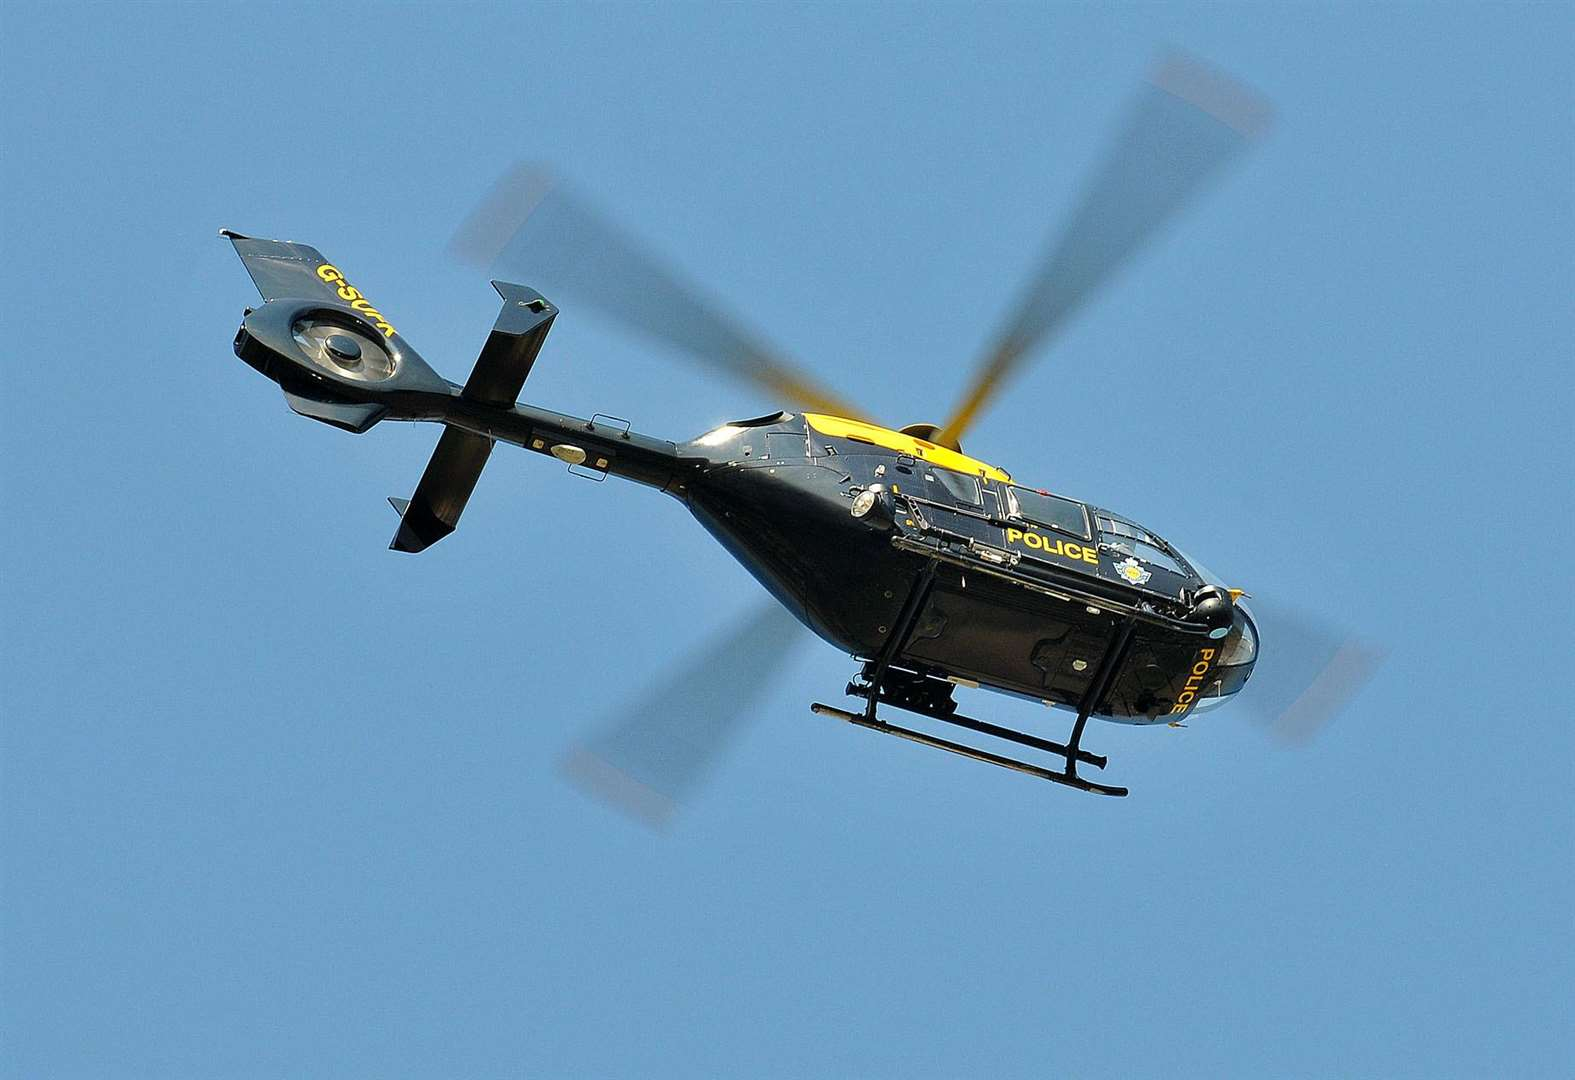 Helicopter searches for missing girl, 4